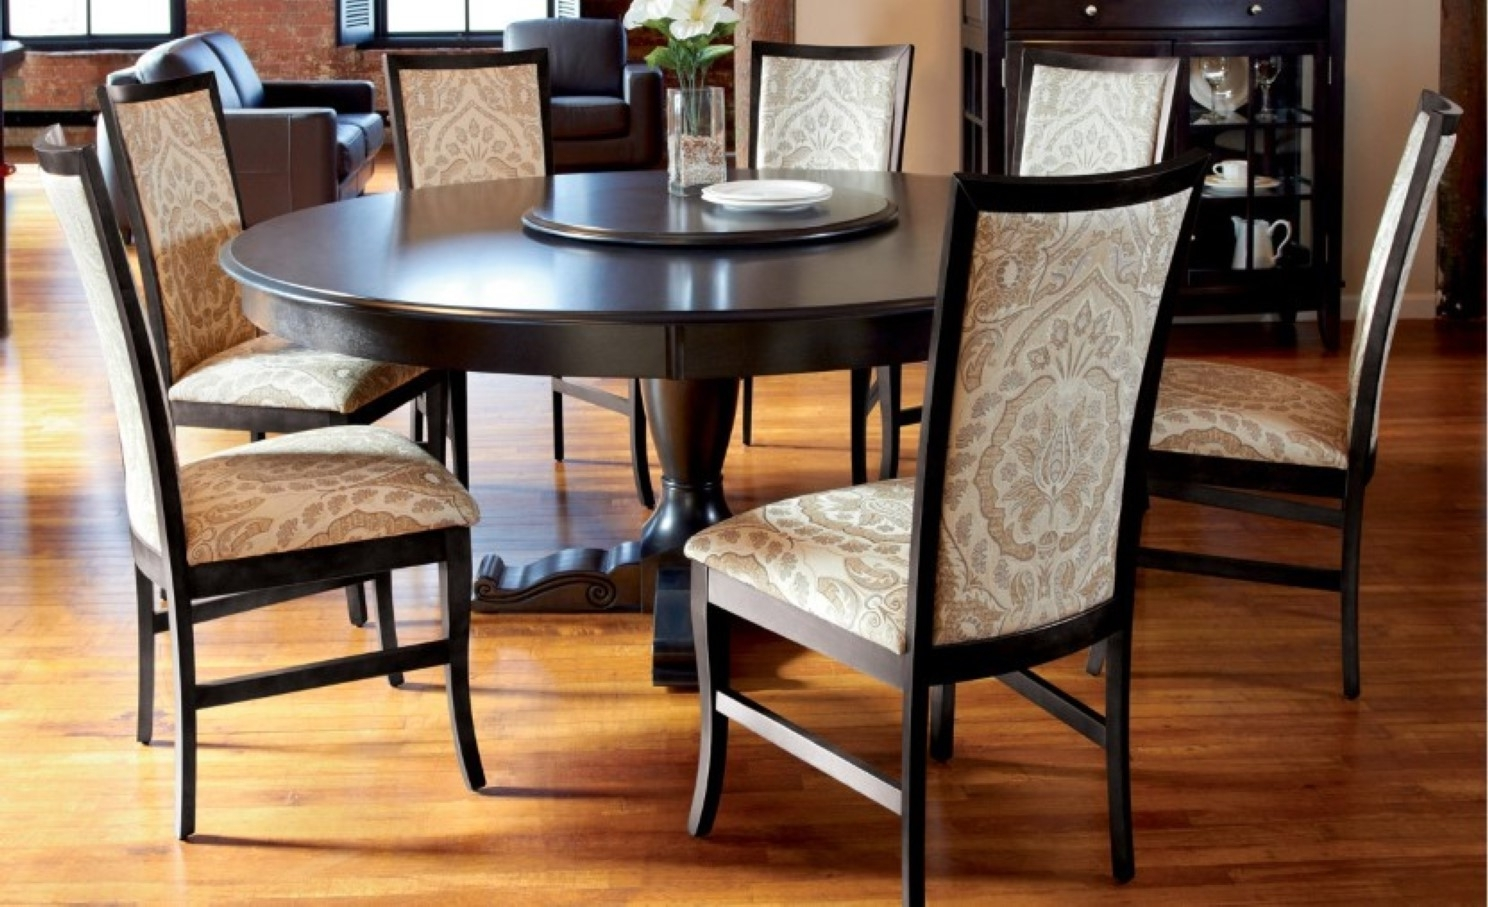 Dining Room Large Solid Wood Dining Room Table Dining Chairs For Pertaining To Latest Dark Wooden Dining Tables (View 19 of 25)